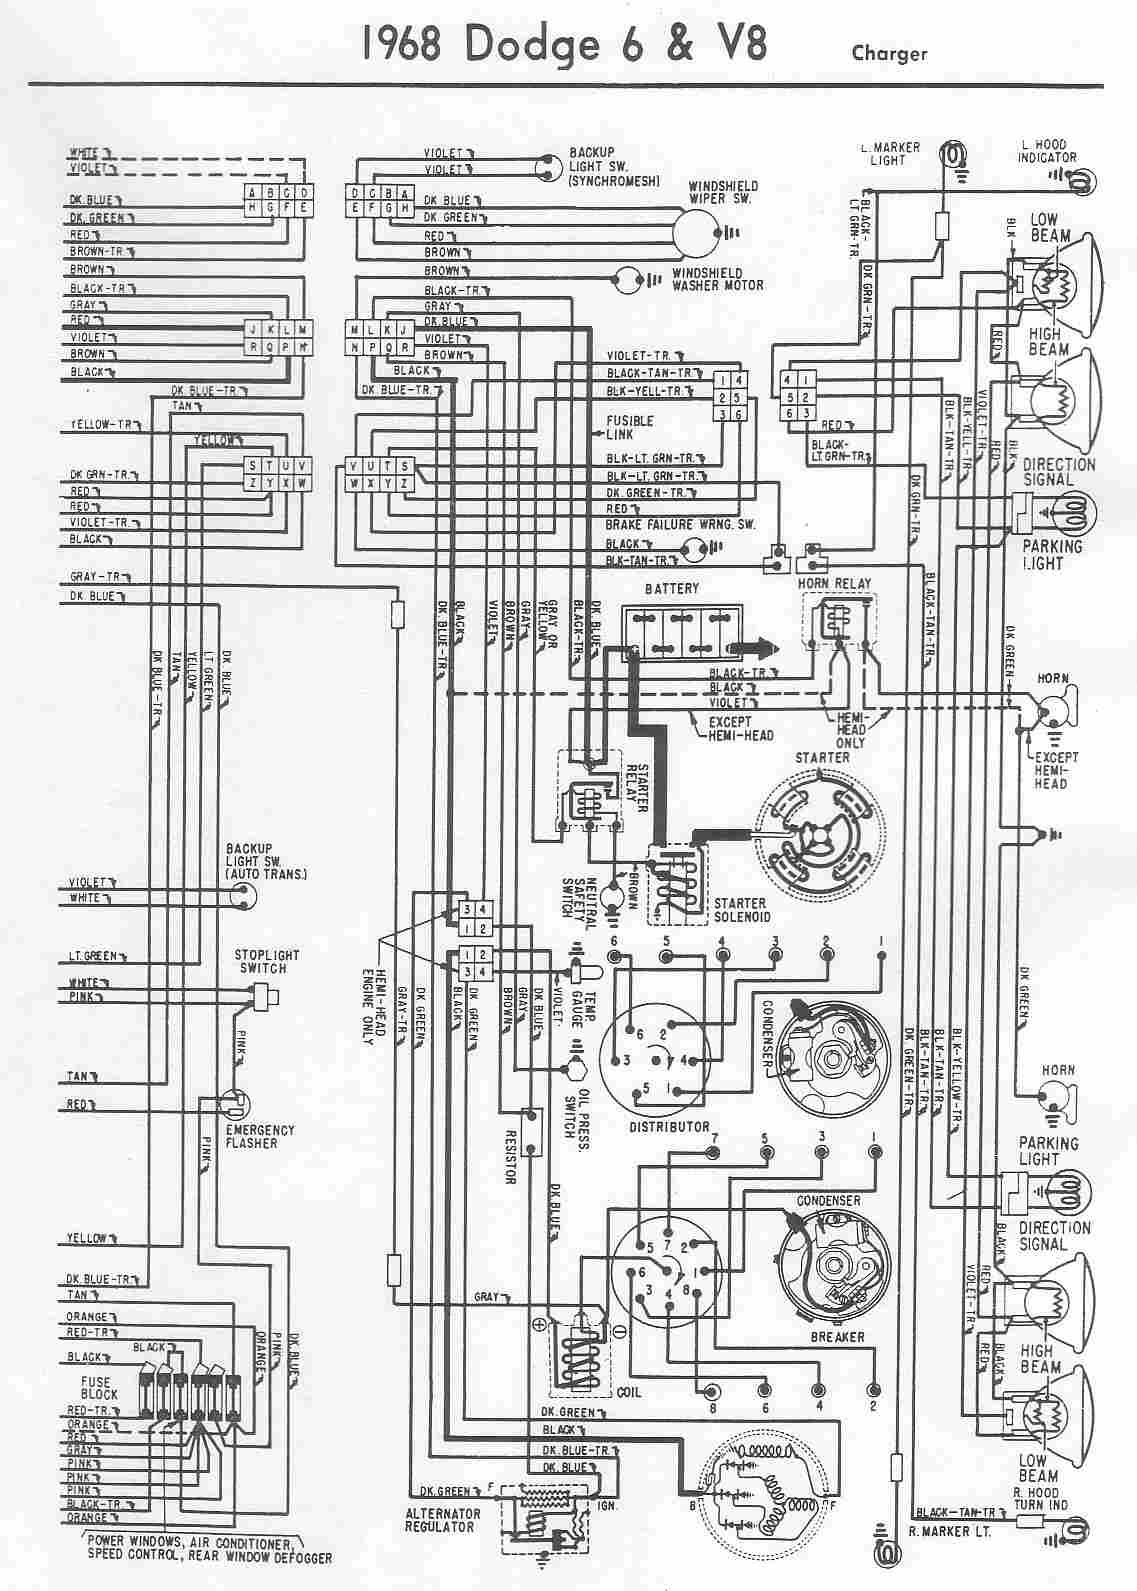 Vw Ignition Coil Wiring Diagram 1973 Charger